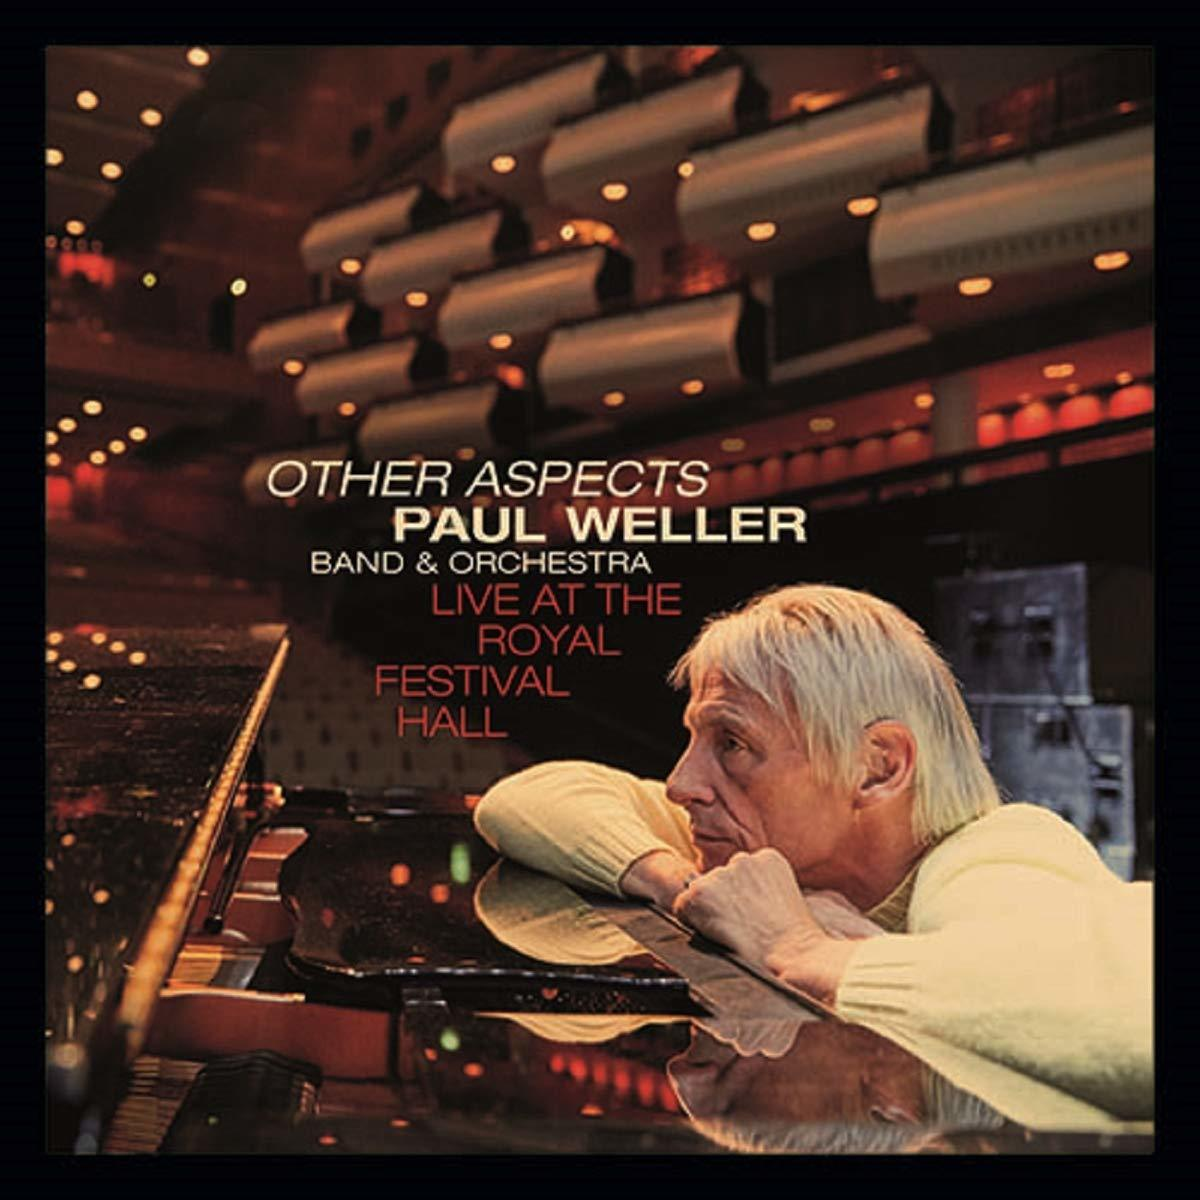 WELLER, PAUL: Other Aspects, Live At The Royal Festival Hall